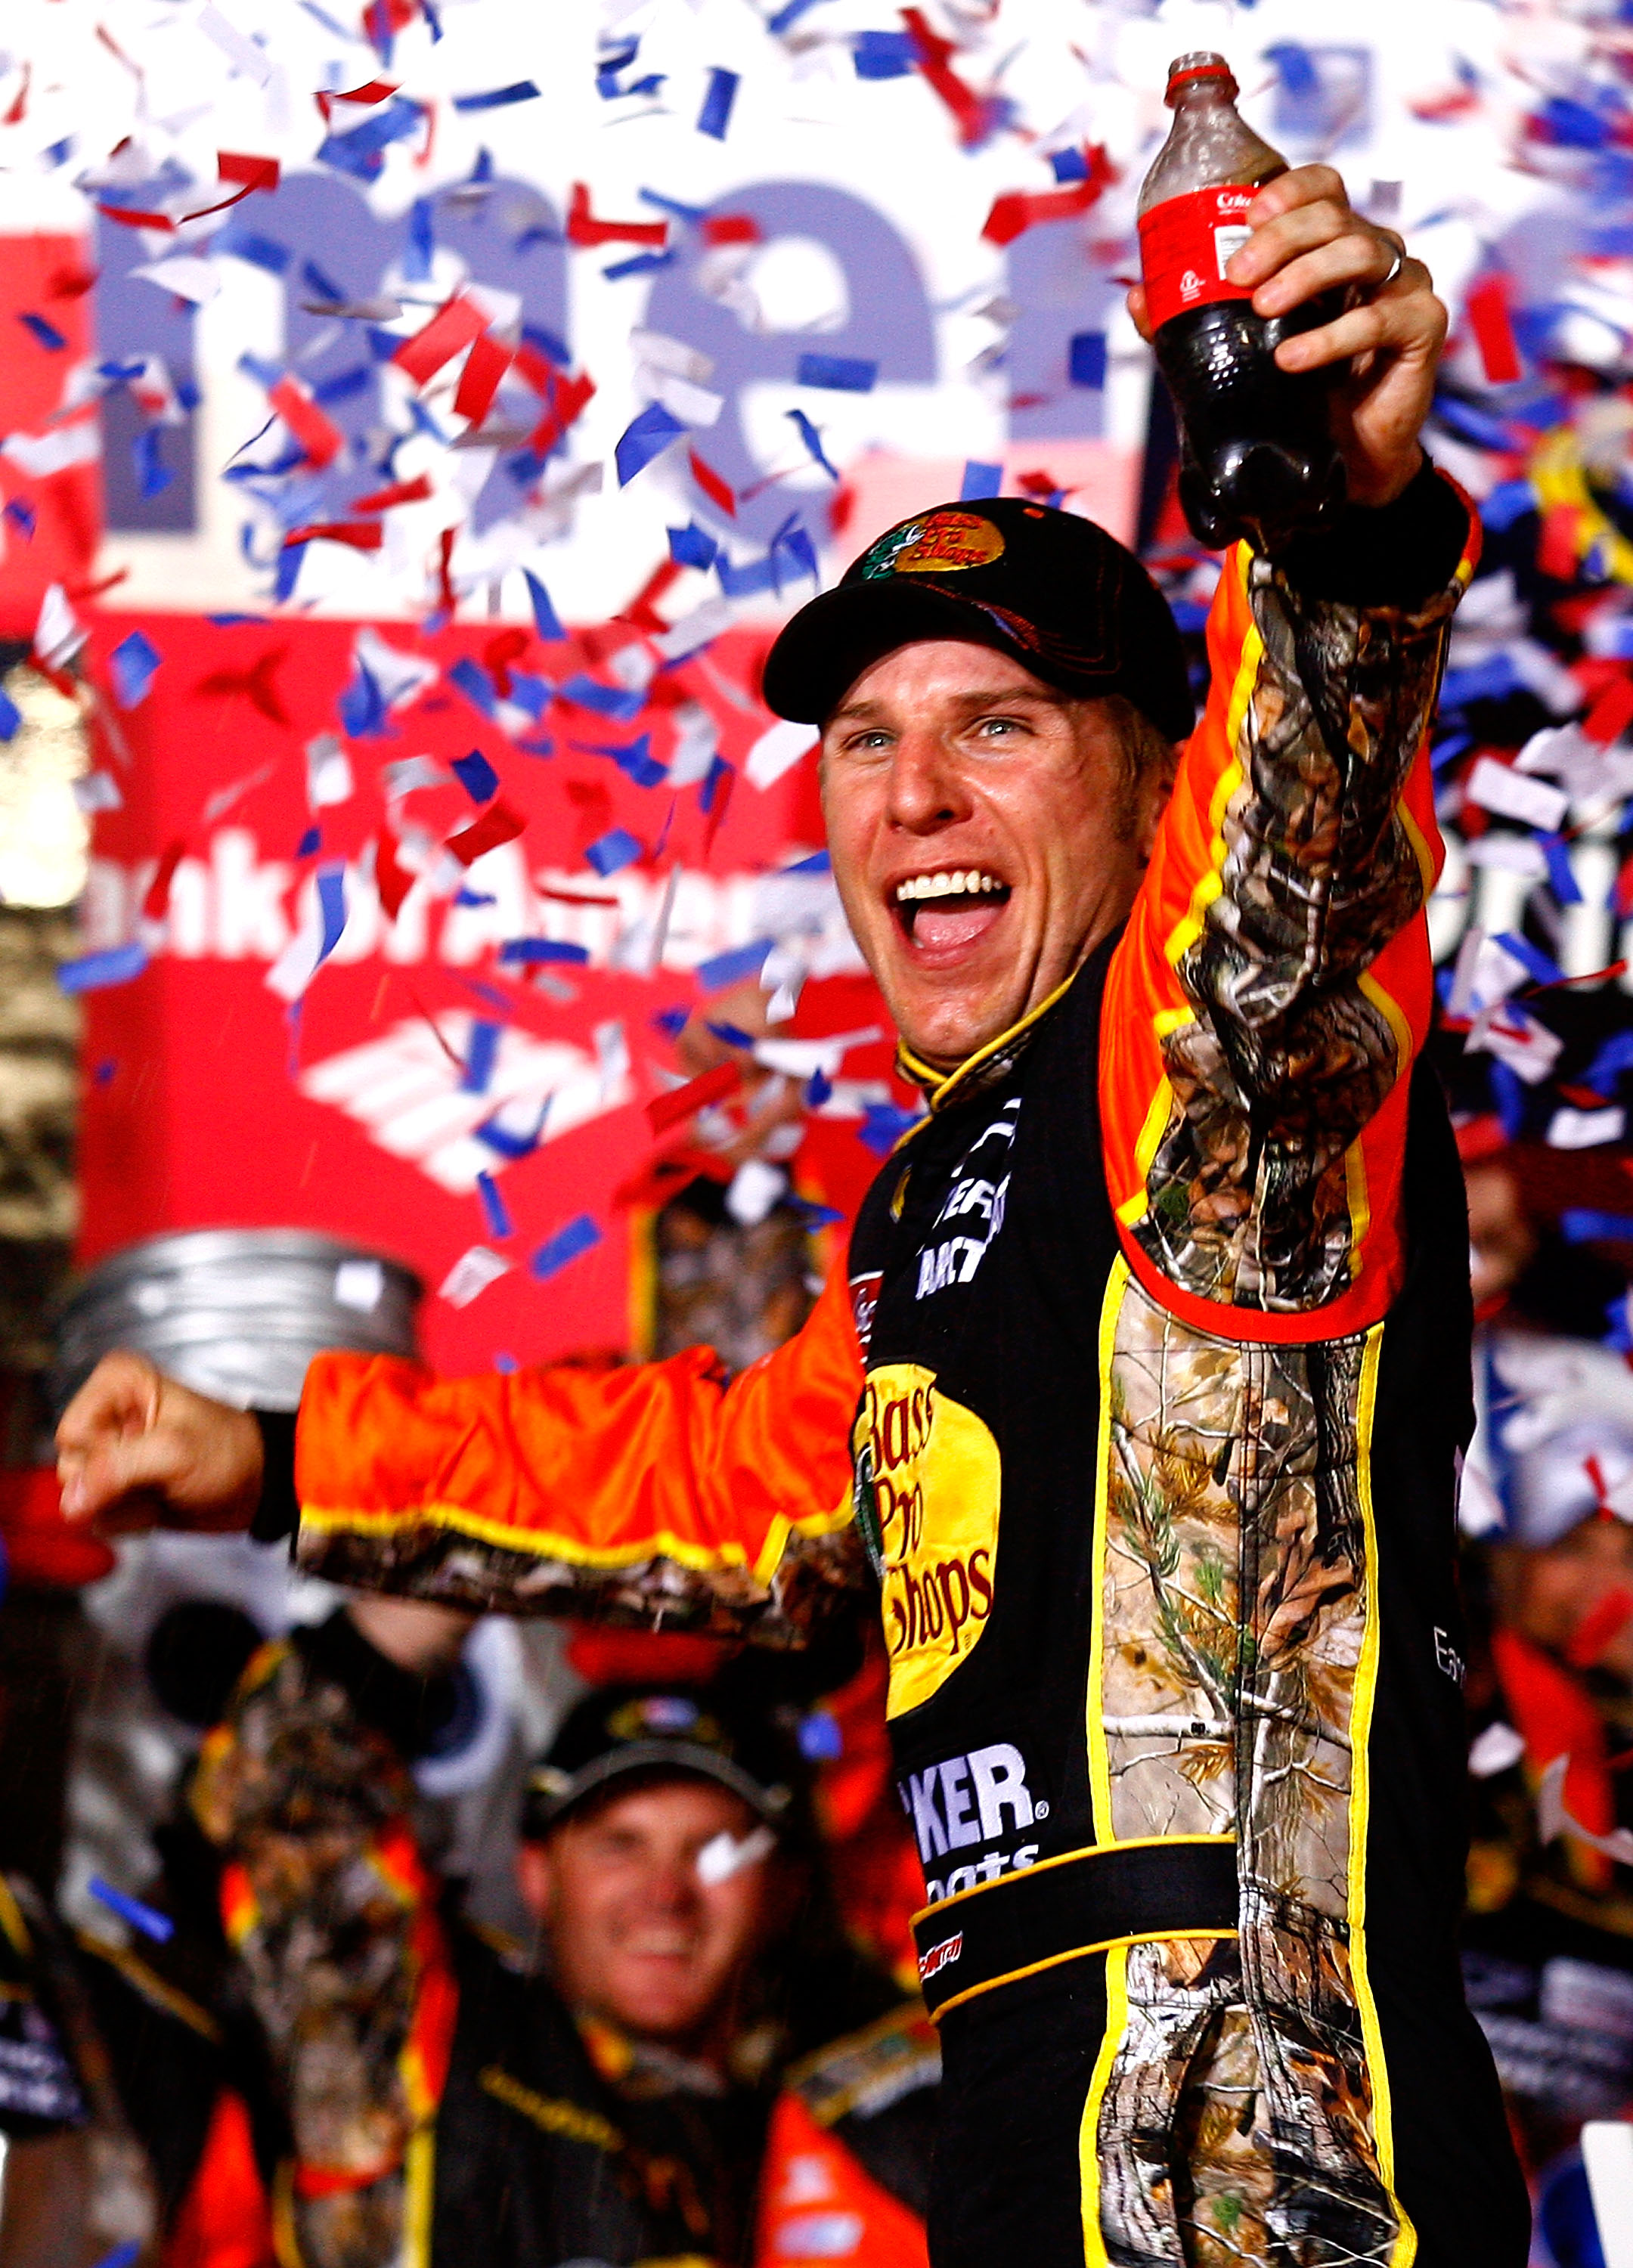 CONCORD, NC - OCTOBER 16:  Jamie McMurray, driver of the #1 Bass Pro Shops/Tracker Boats Chevrolet, celebrates in Victory Lane after winning the NASCAR Sprint Cup Series Bank of America 500 at Charlotte Motor Speedway on October 16, 2010 in Concord, North